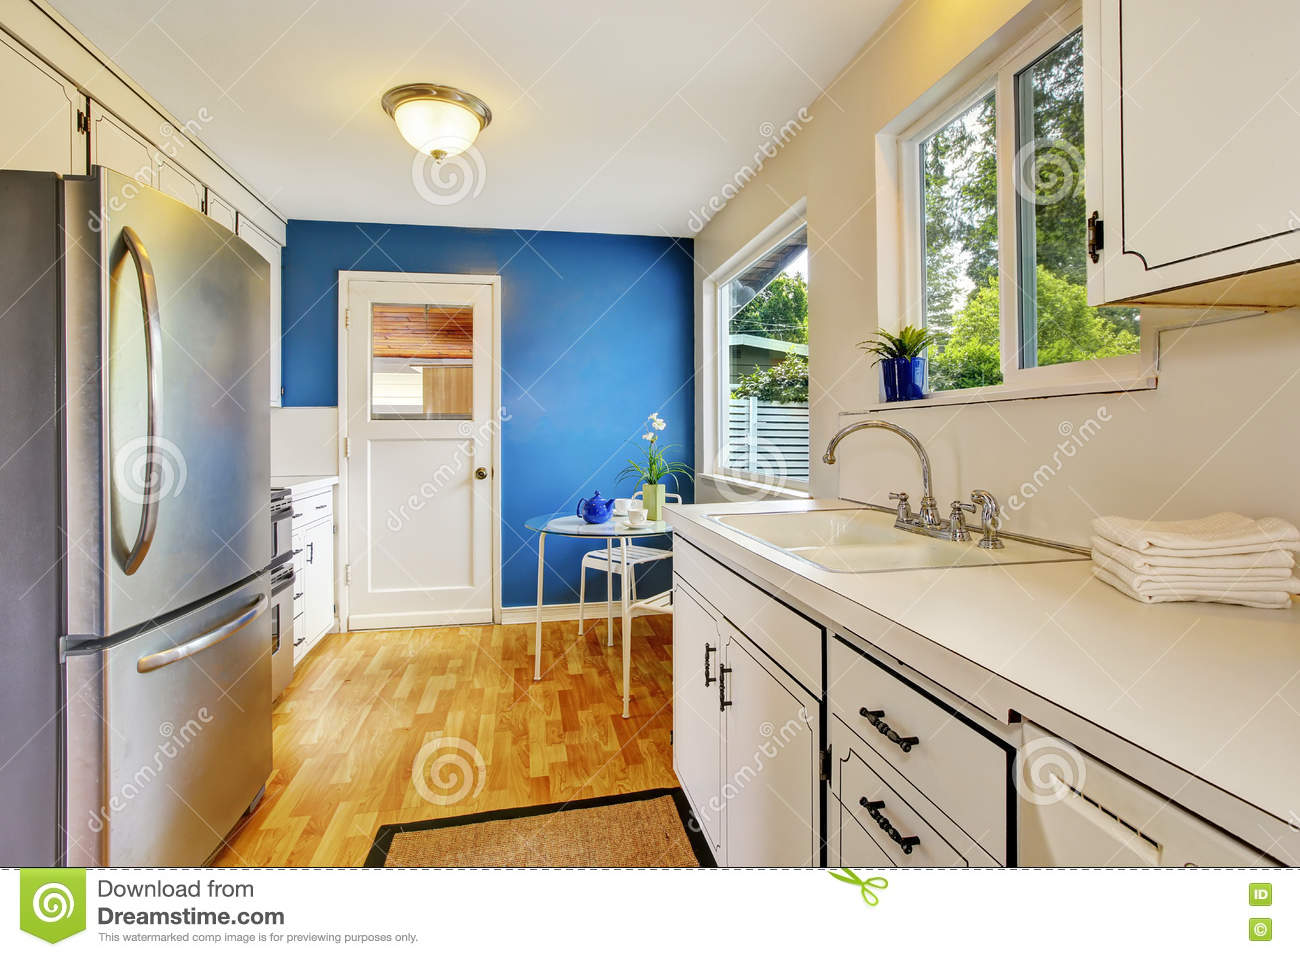 Kitchen Room With White Cabinets Blue Walls And Glass Able